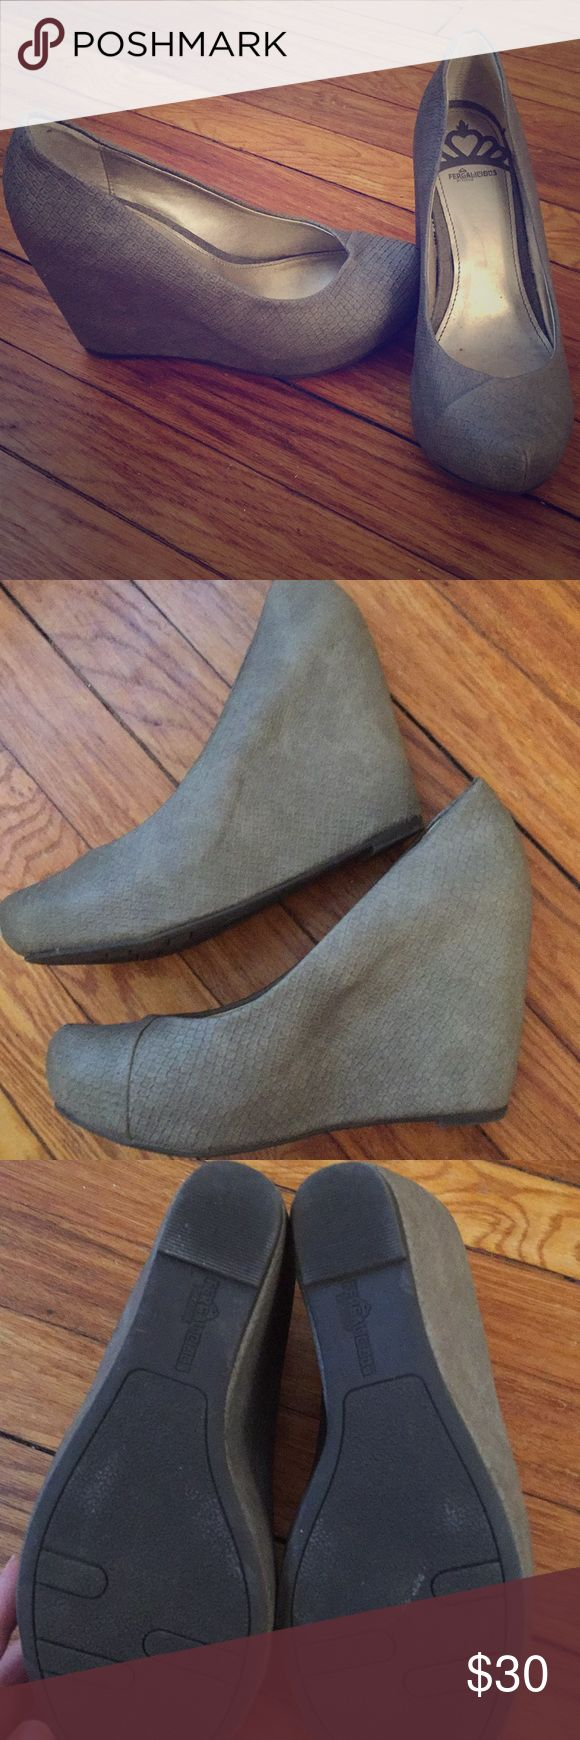 Gray wedge closed toed shoes Barely worn! Fergalicious gray wedge closed toed shoes Fergalicious Shoes Wedges